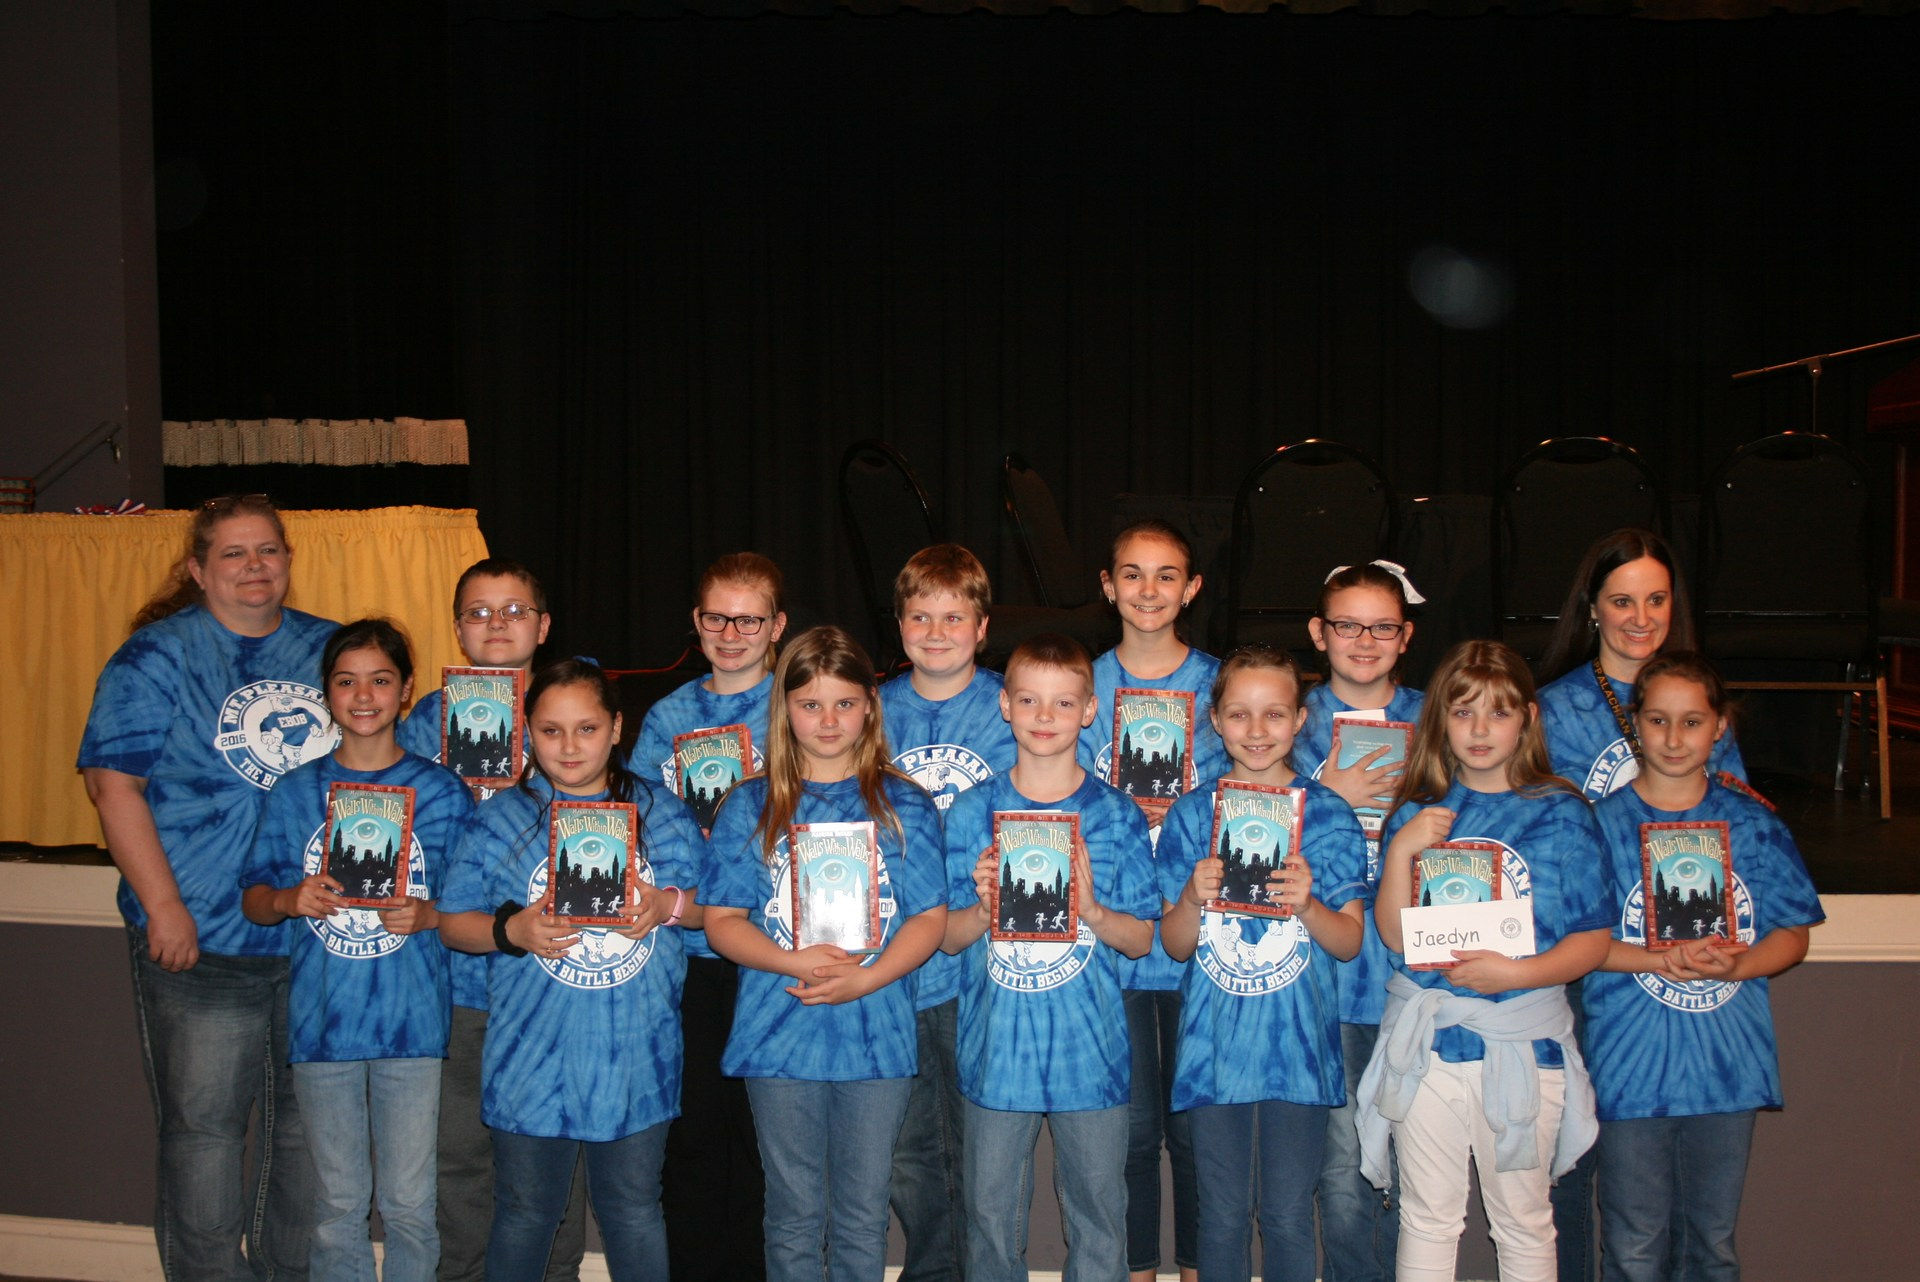 Mt. Pleasant Elementary's Battle of the Books Team